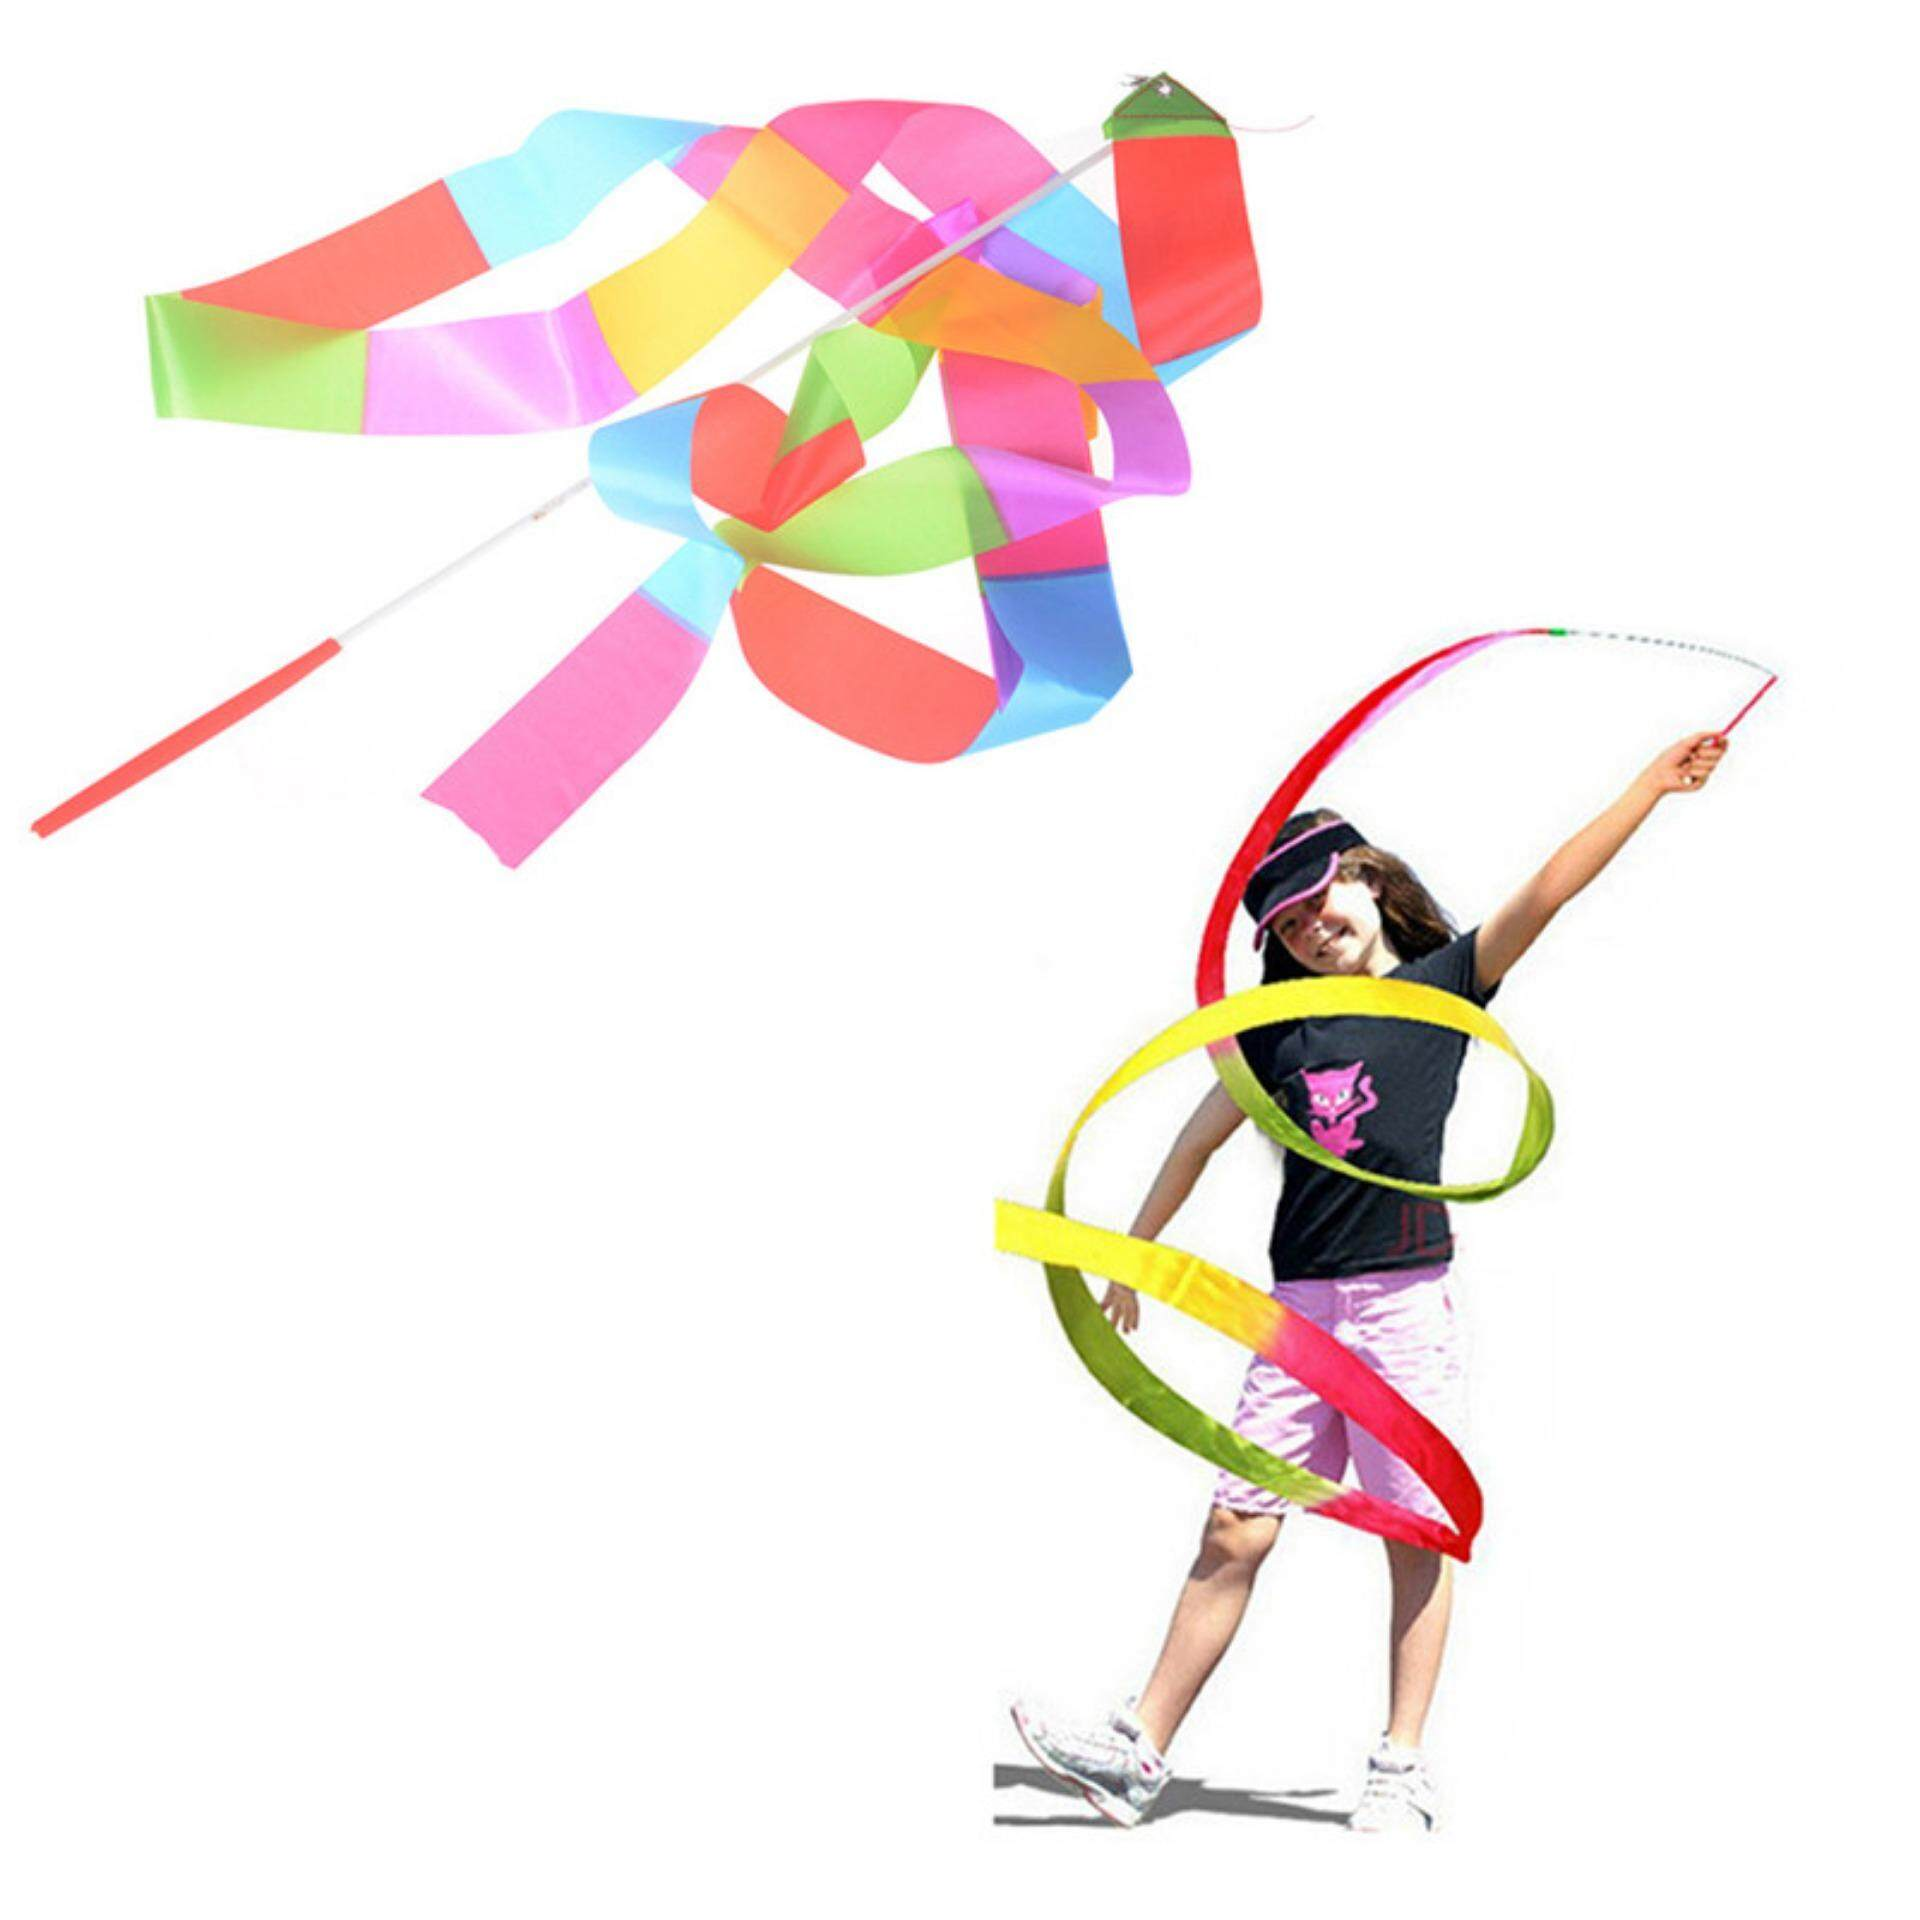 Popular Colorful 4m Ribbon Gymnastics Dance Dancer Toy Kid Outdoor Sport Toy By Variety Grace.